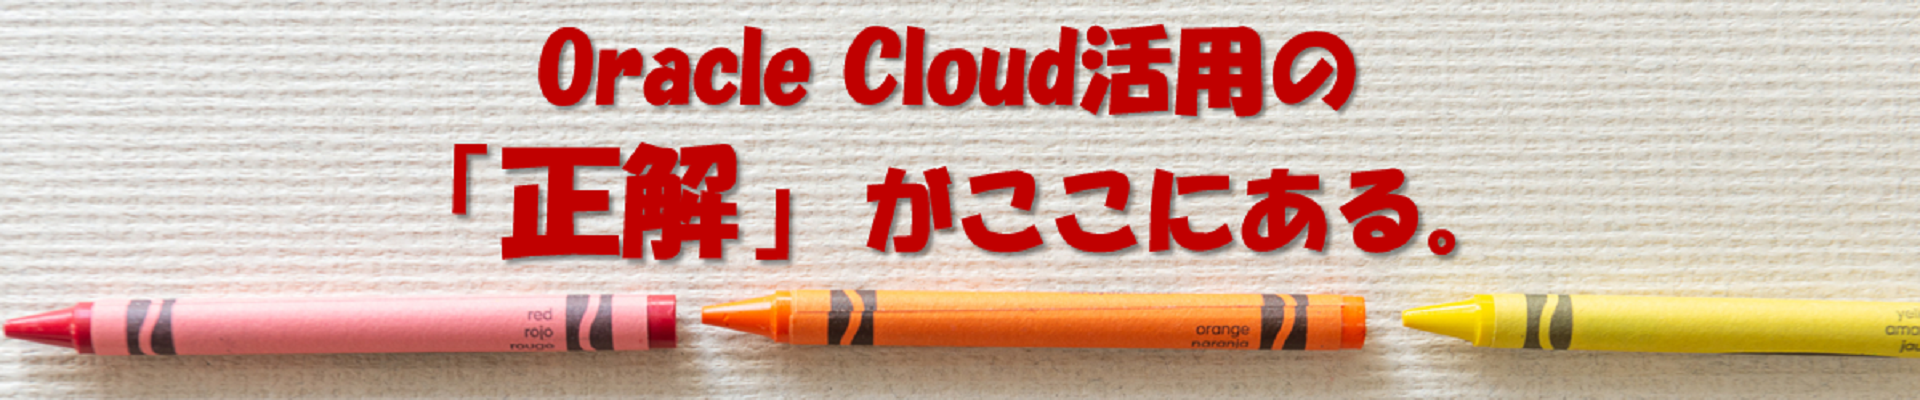 Oracle Cloud活用